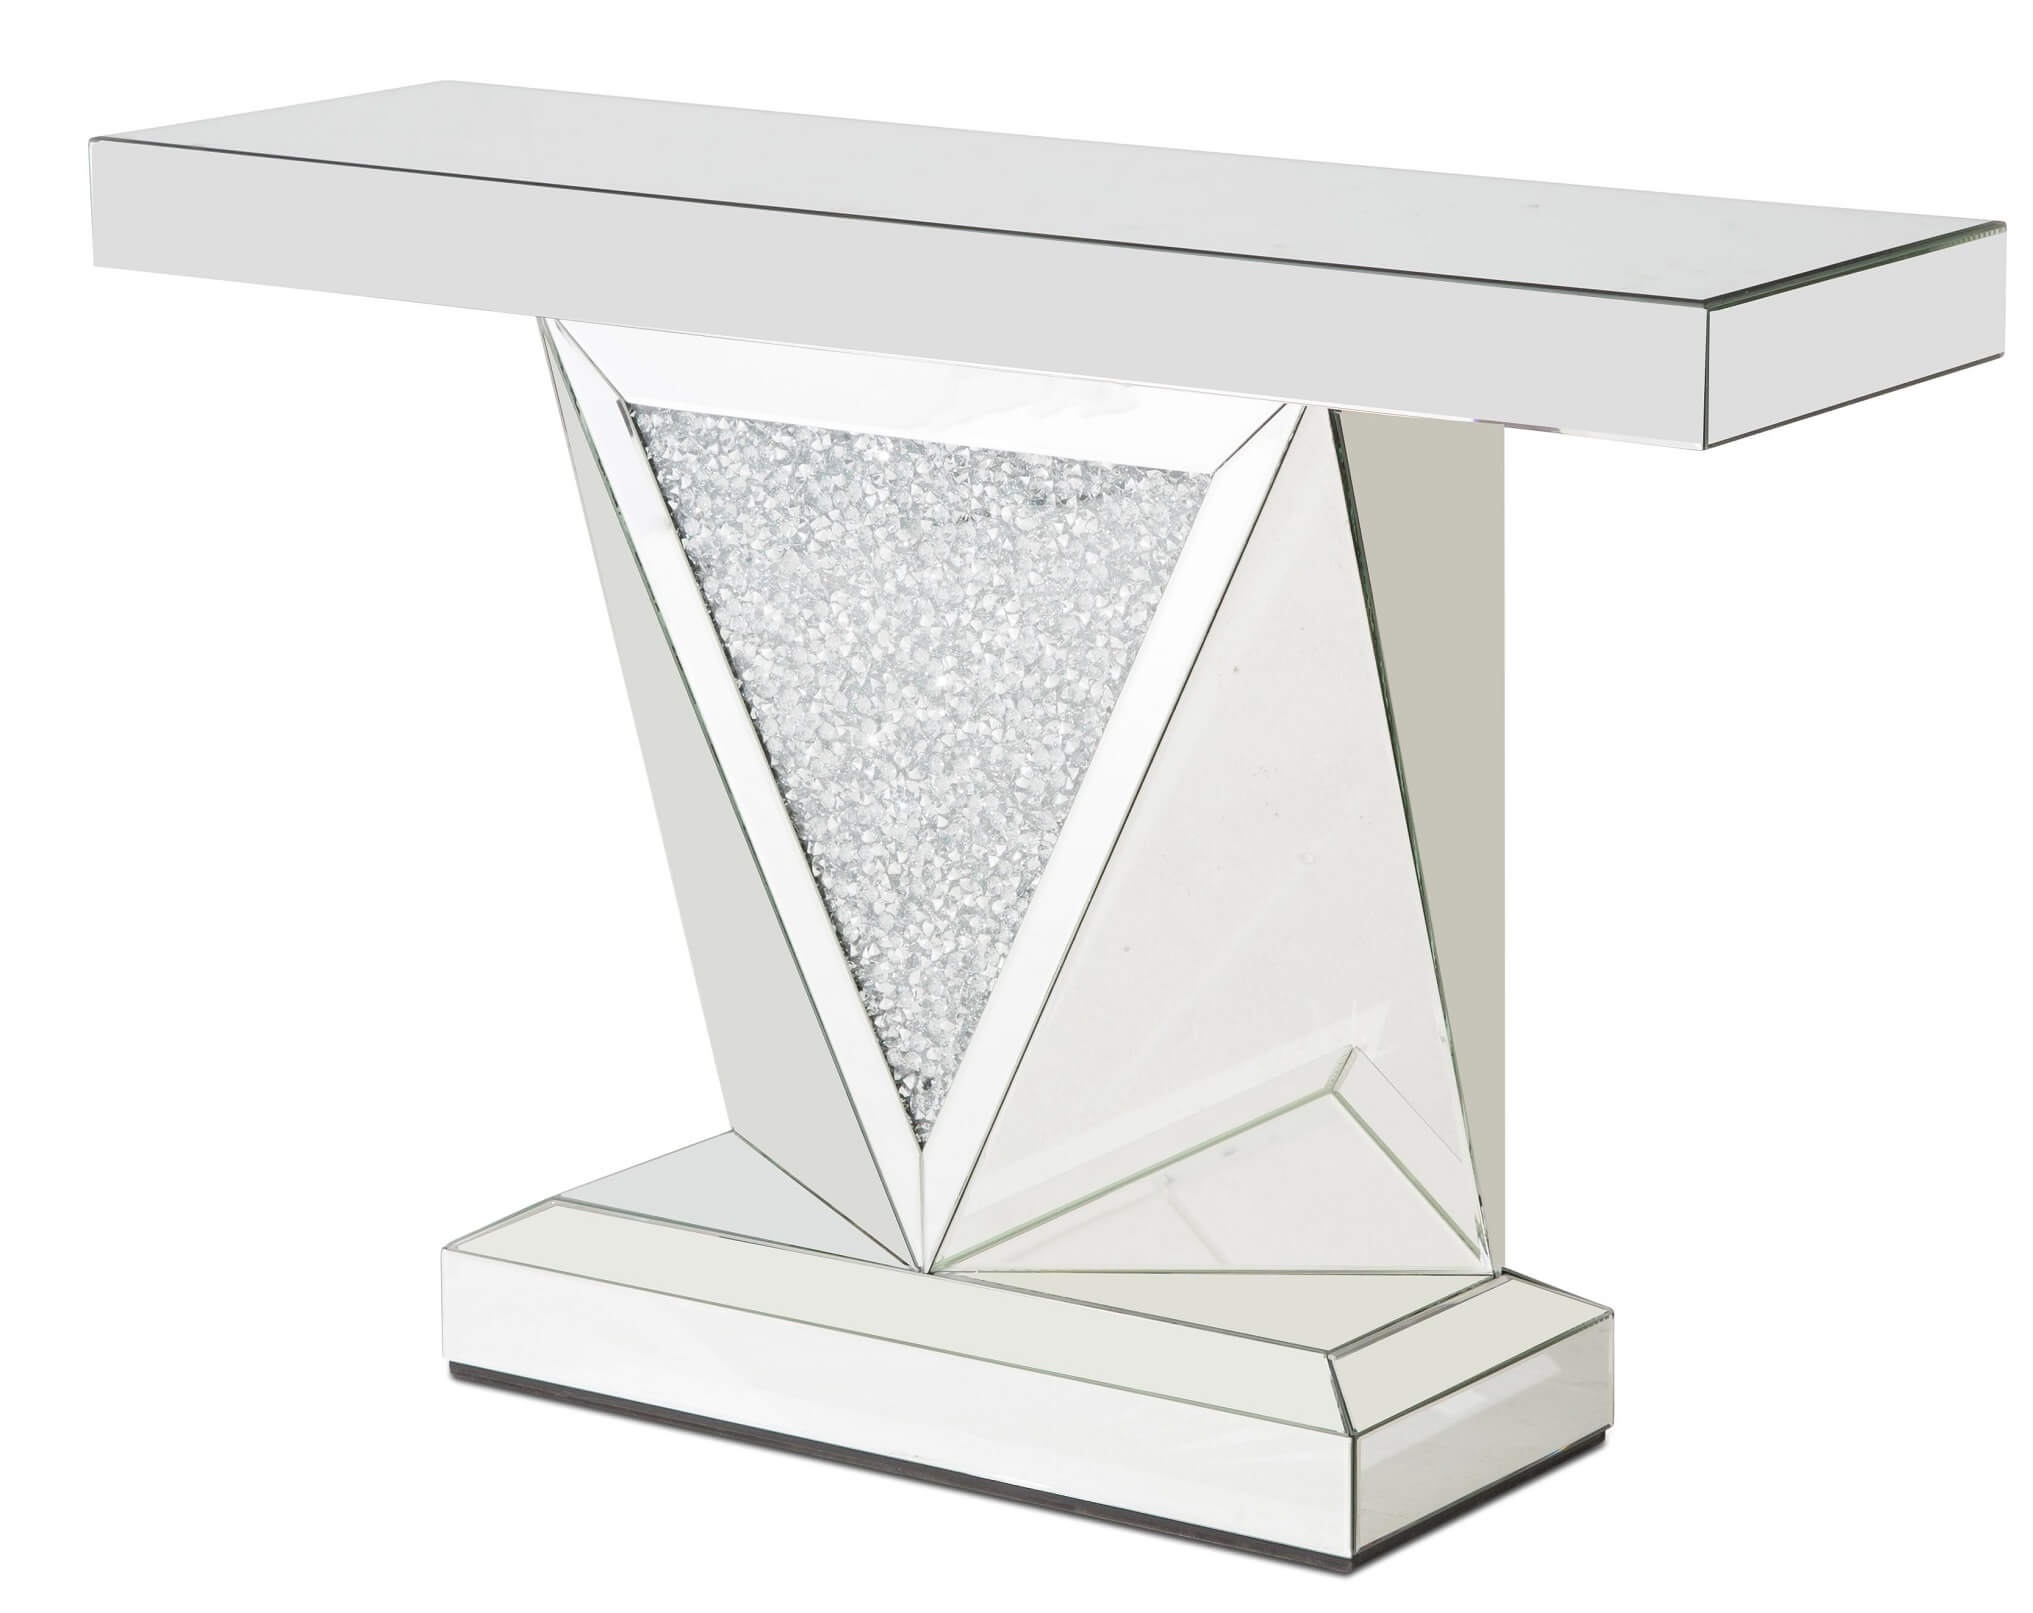 Charmant Montreal Console Table Mirror With Crystal AICO